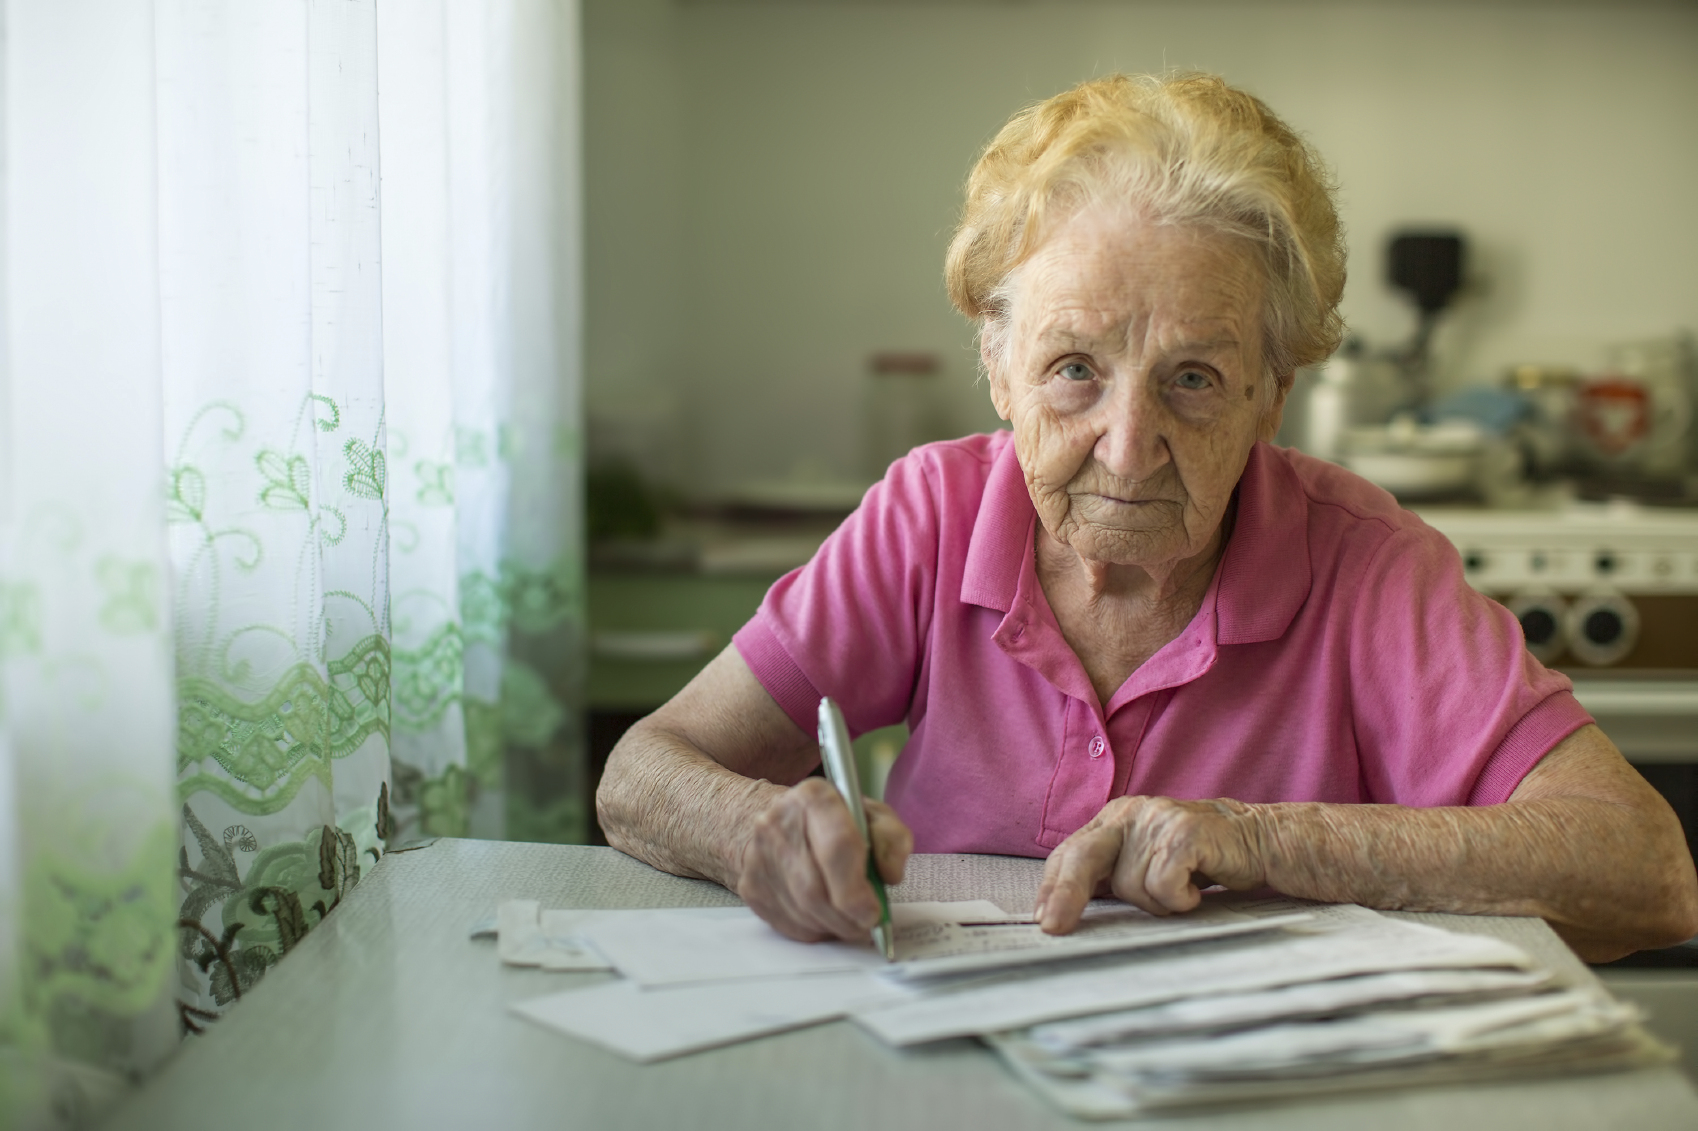 Israeli Laws Concerning Care for the Elderly